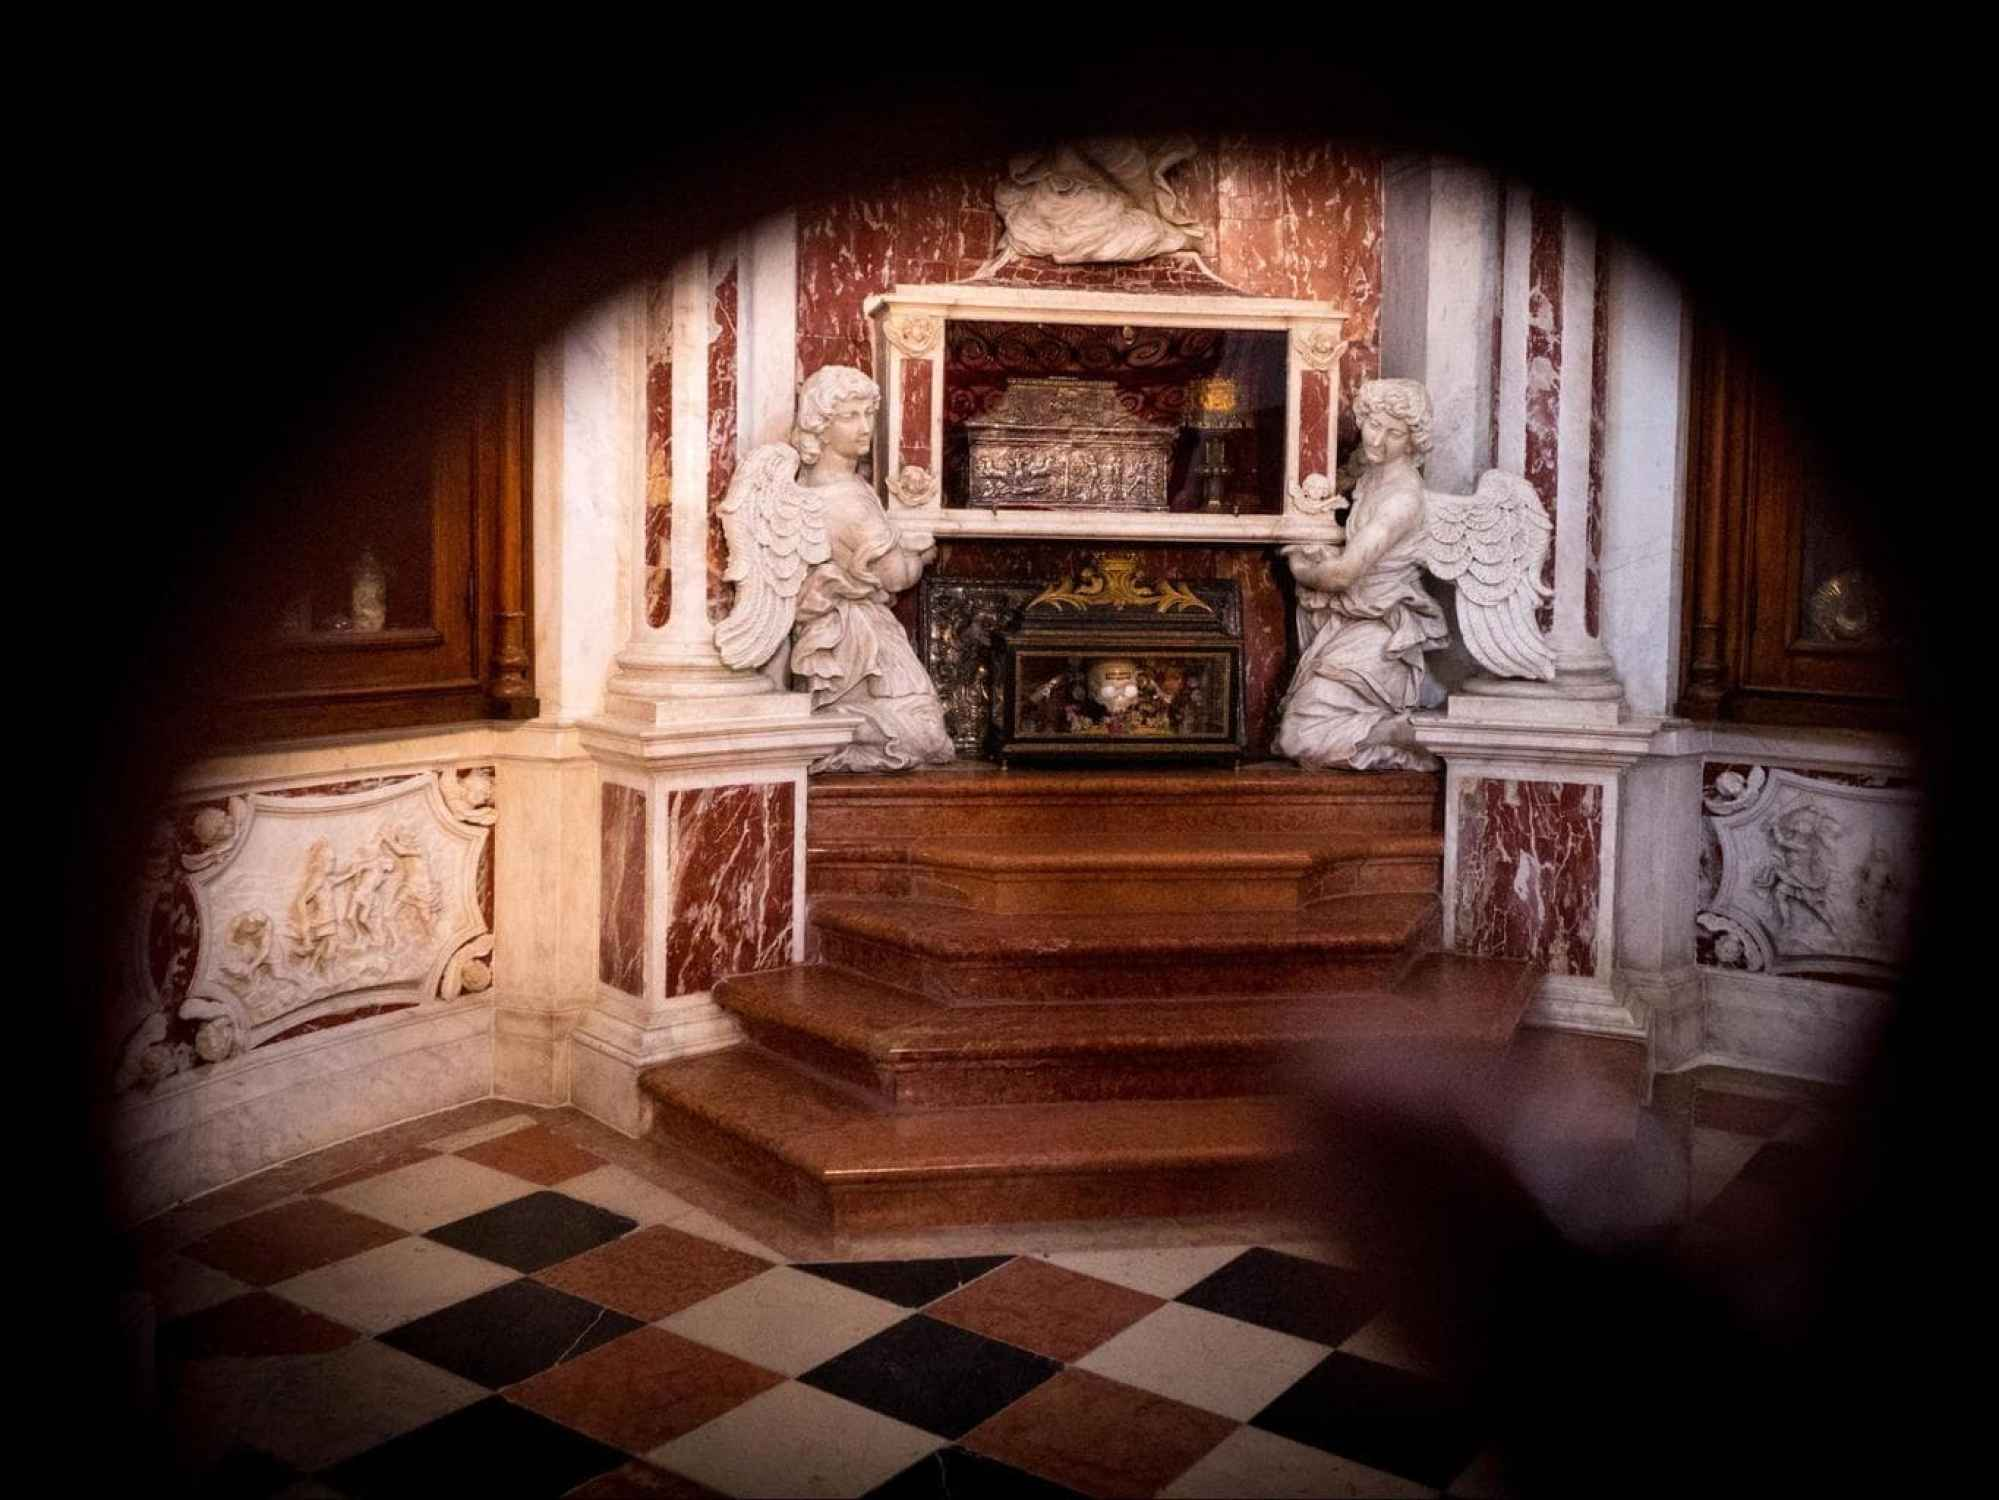 The relics of St. Tryphon